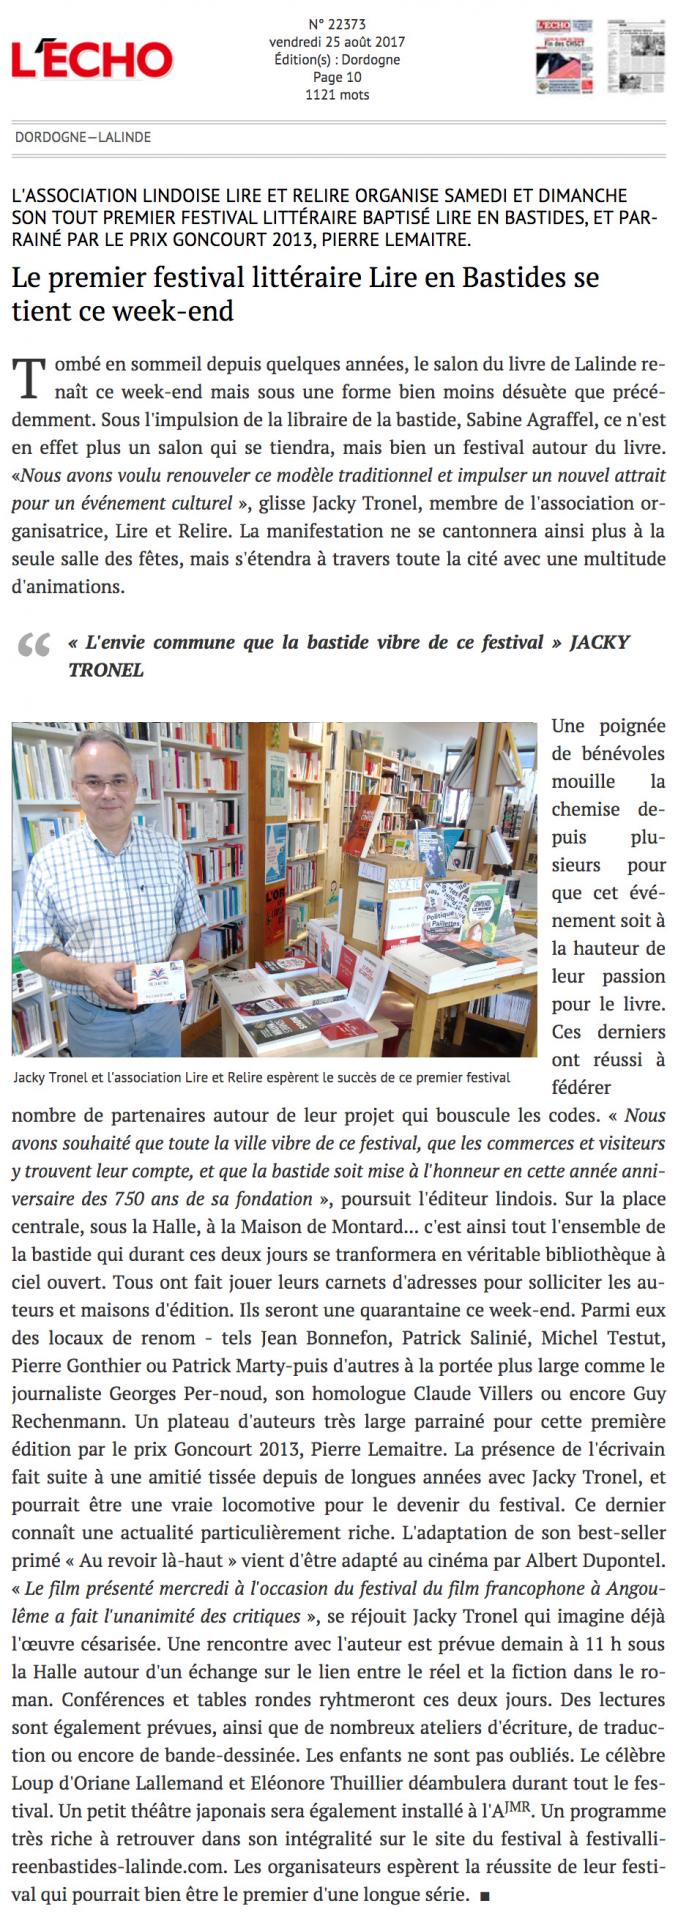 Journal l echo de la dordogne 25 08 2017